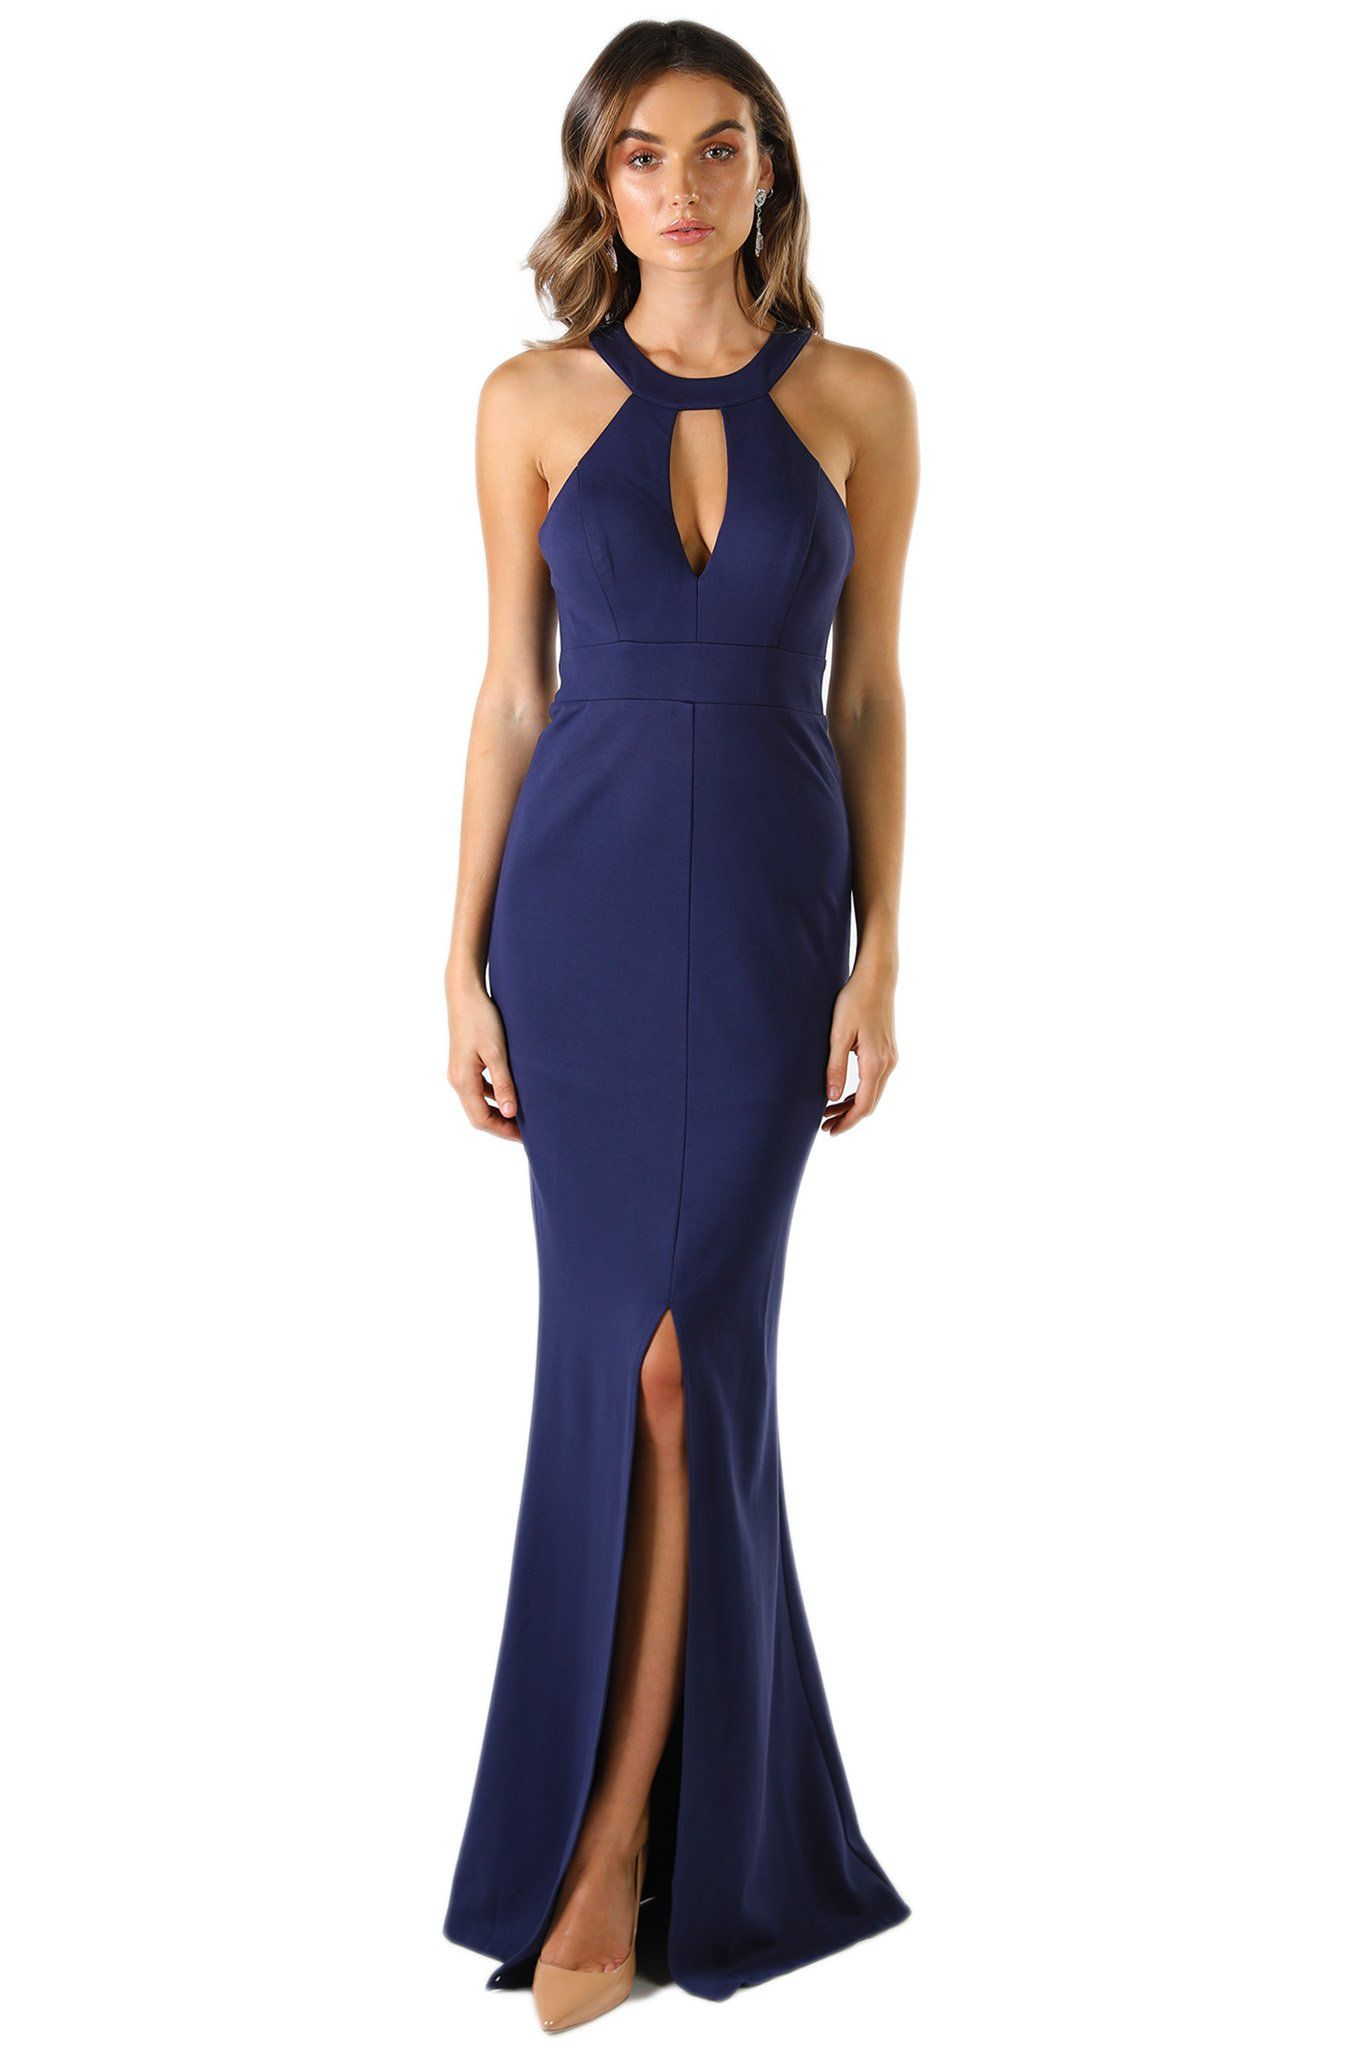 Navy sleeveless form fitting maxi dress features high neck collar keyhole, centre front slit, and lace details at the back